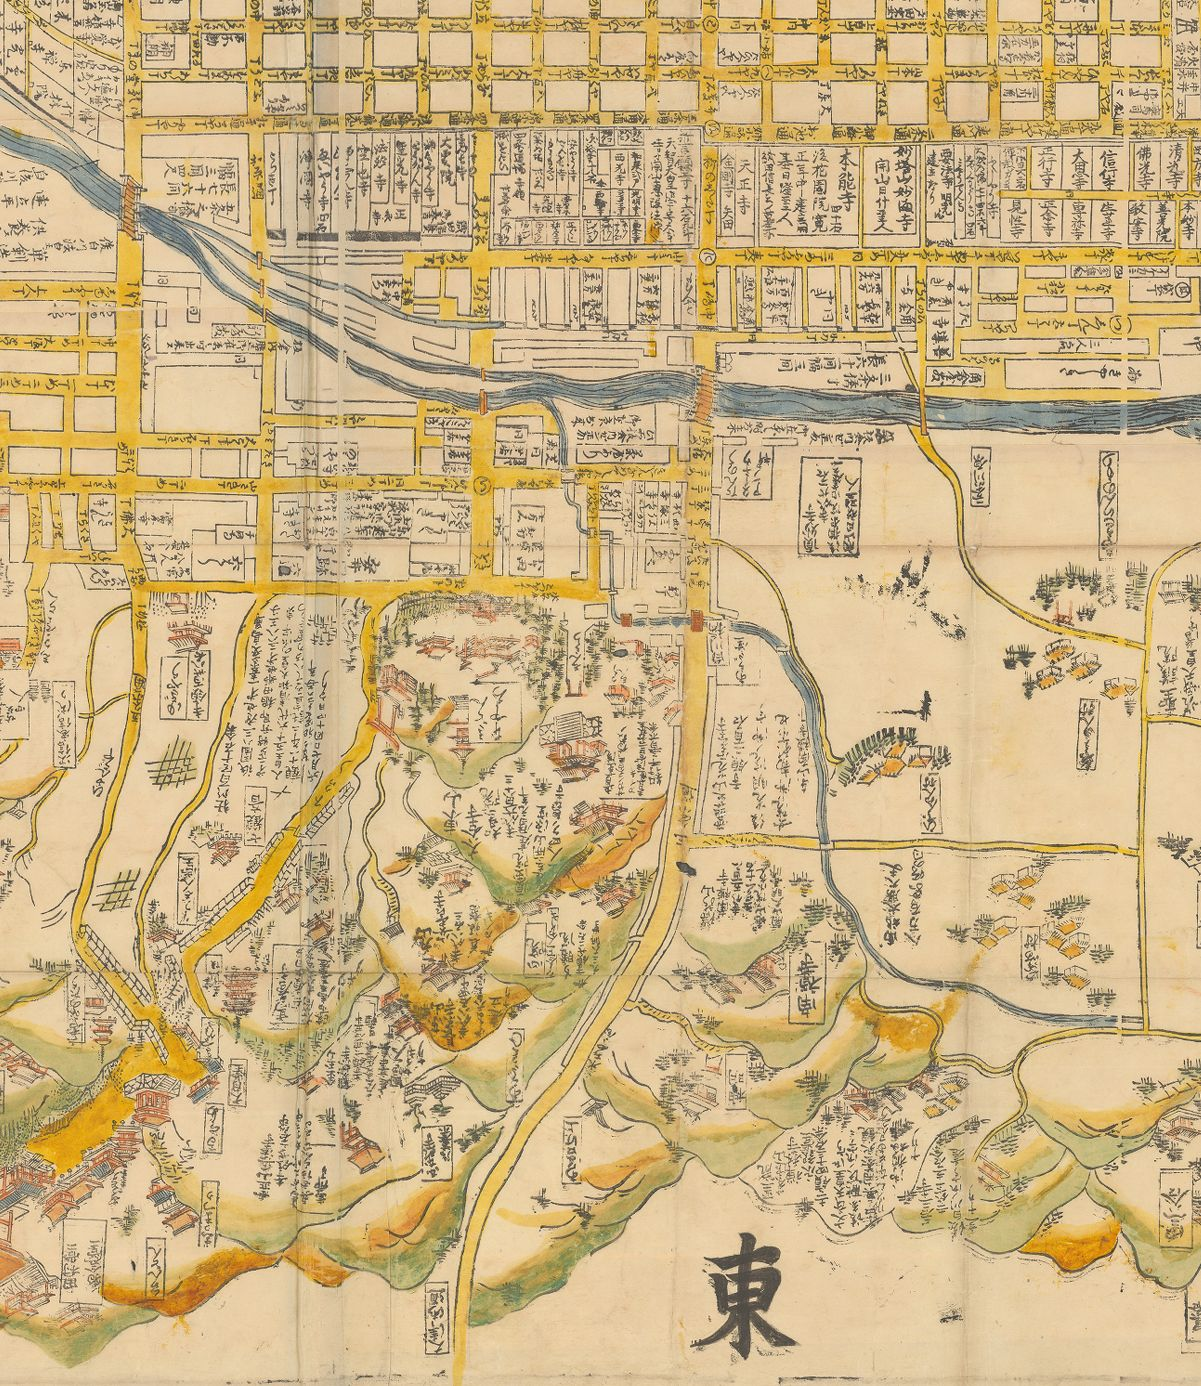 Eastern detail from the Large map of Kyoto (1699)